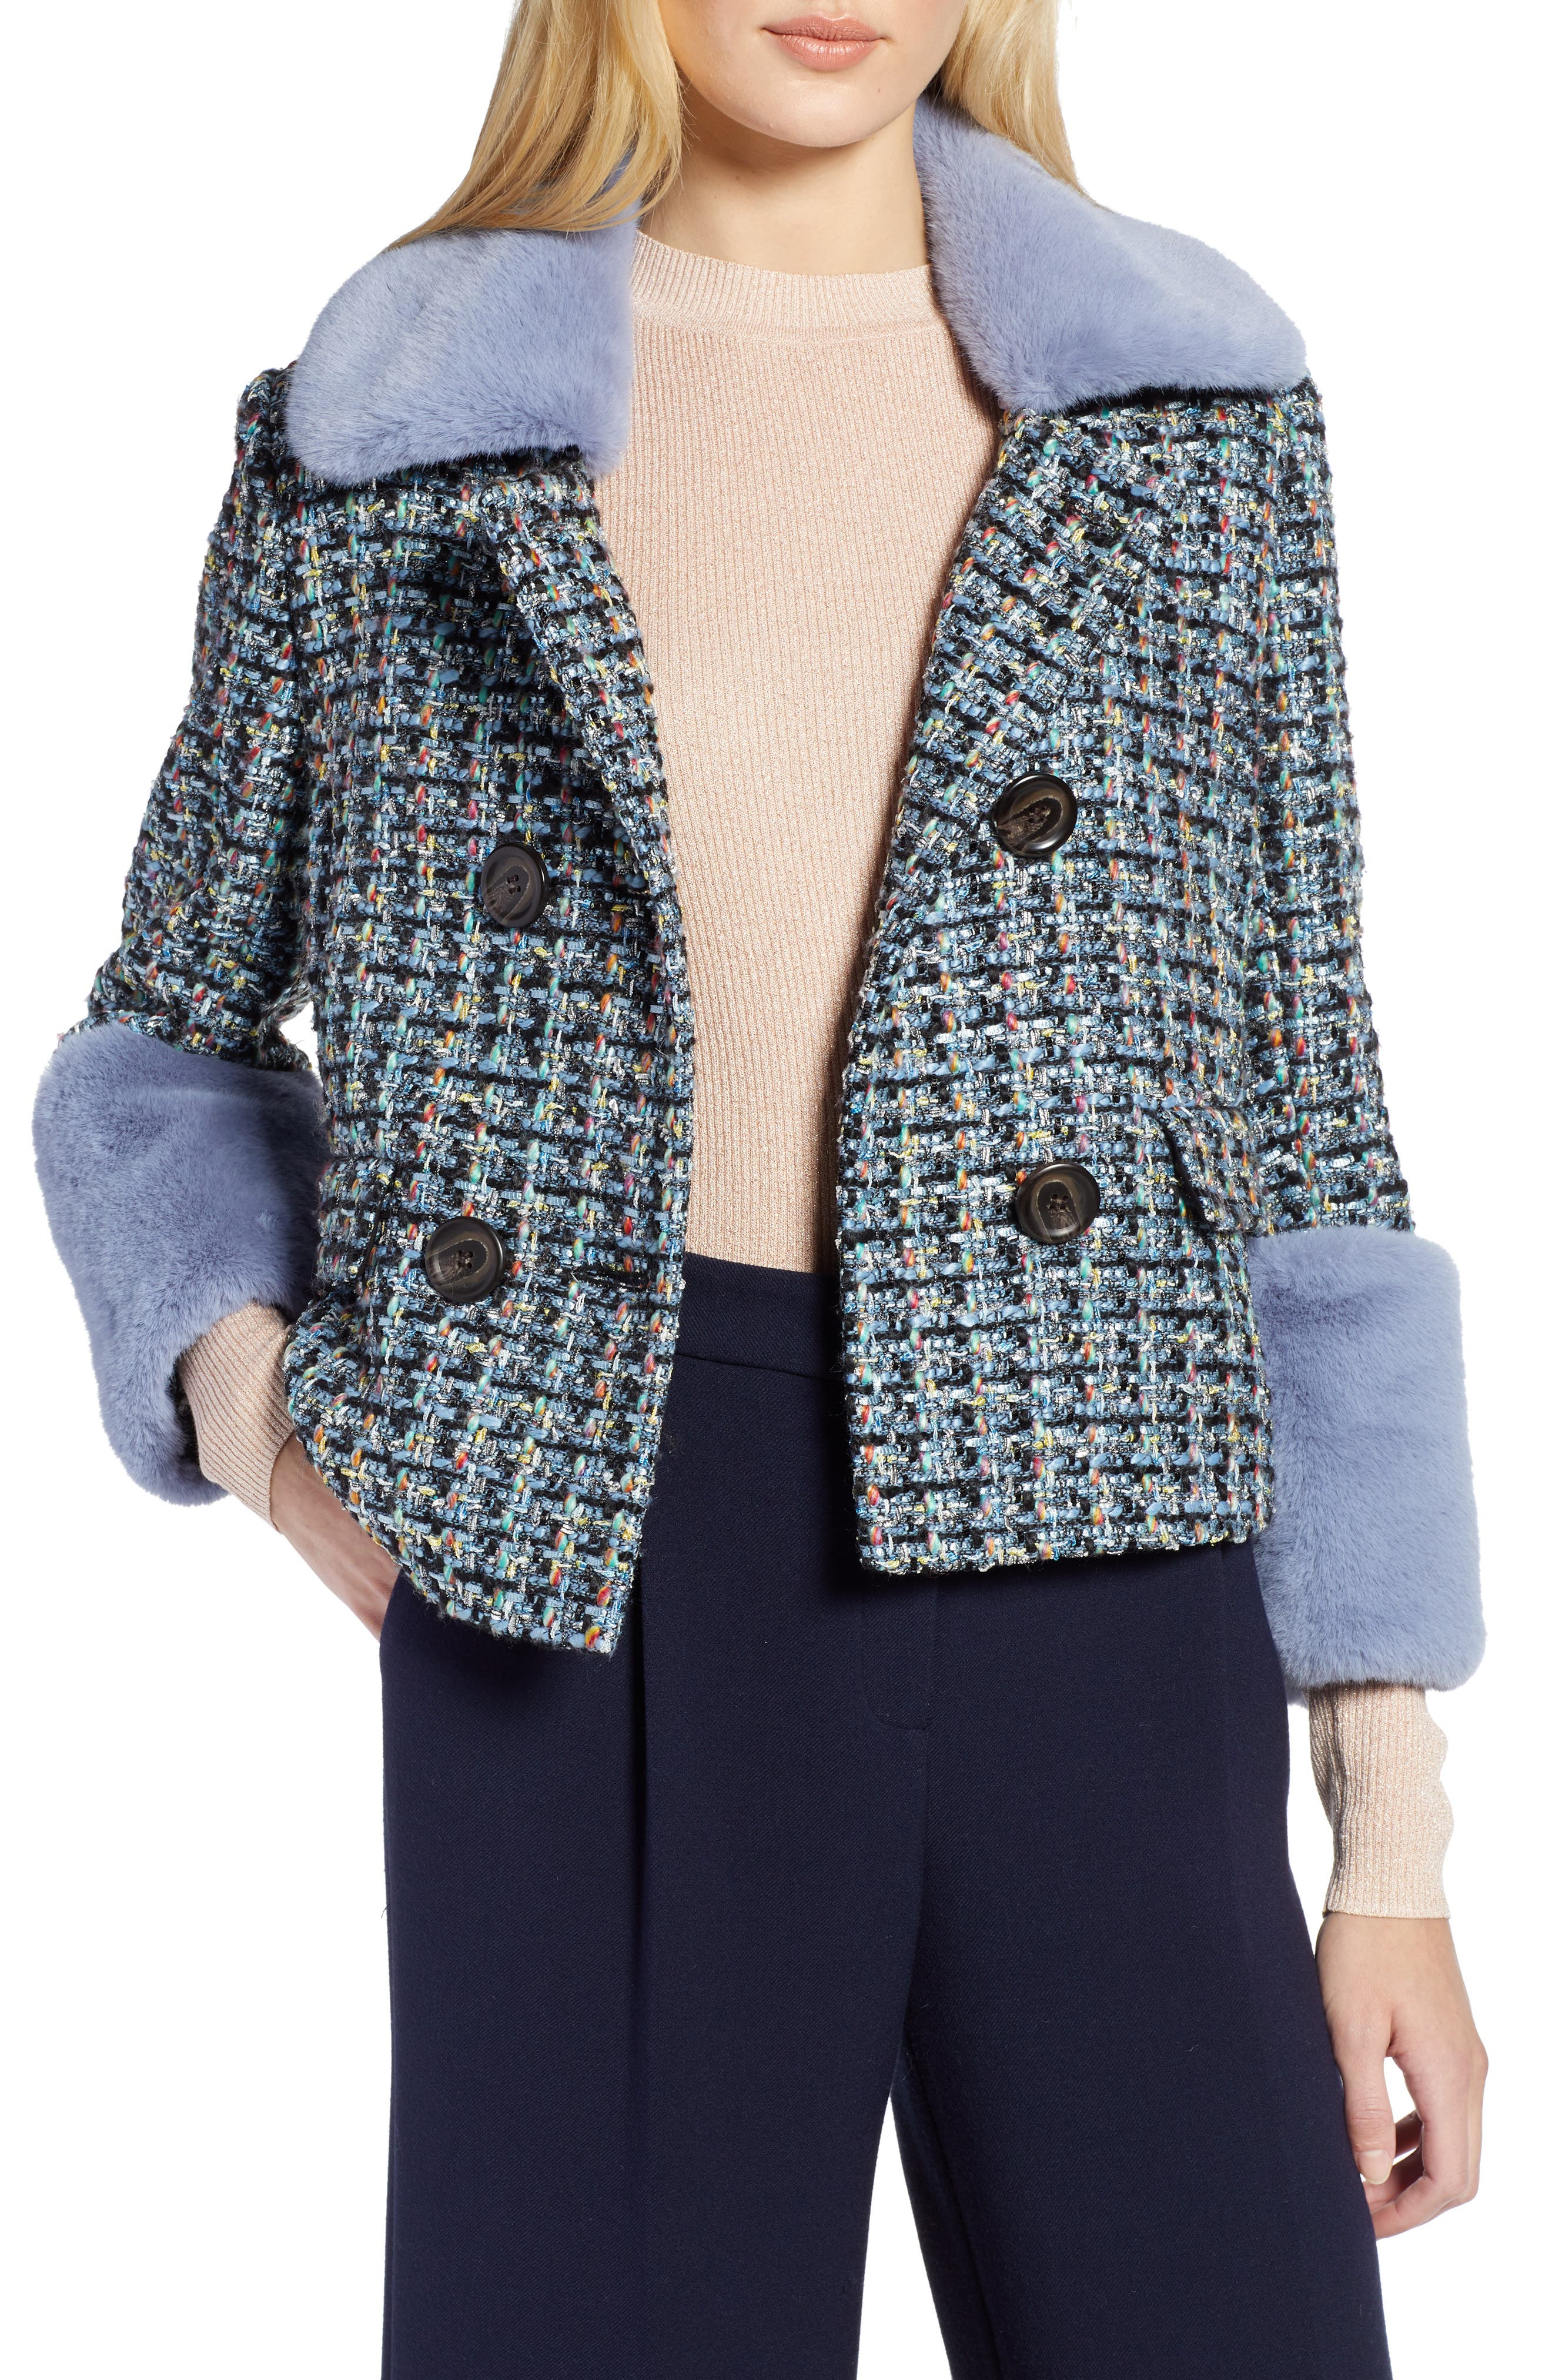 x Atlantic-Pacific Tweed Jacket with Removable Faux Fur Trim,                         Main,                         color, BLACK MULTI TWEED